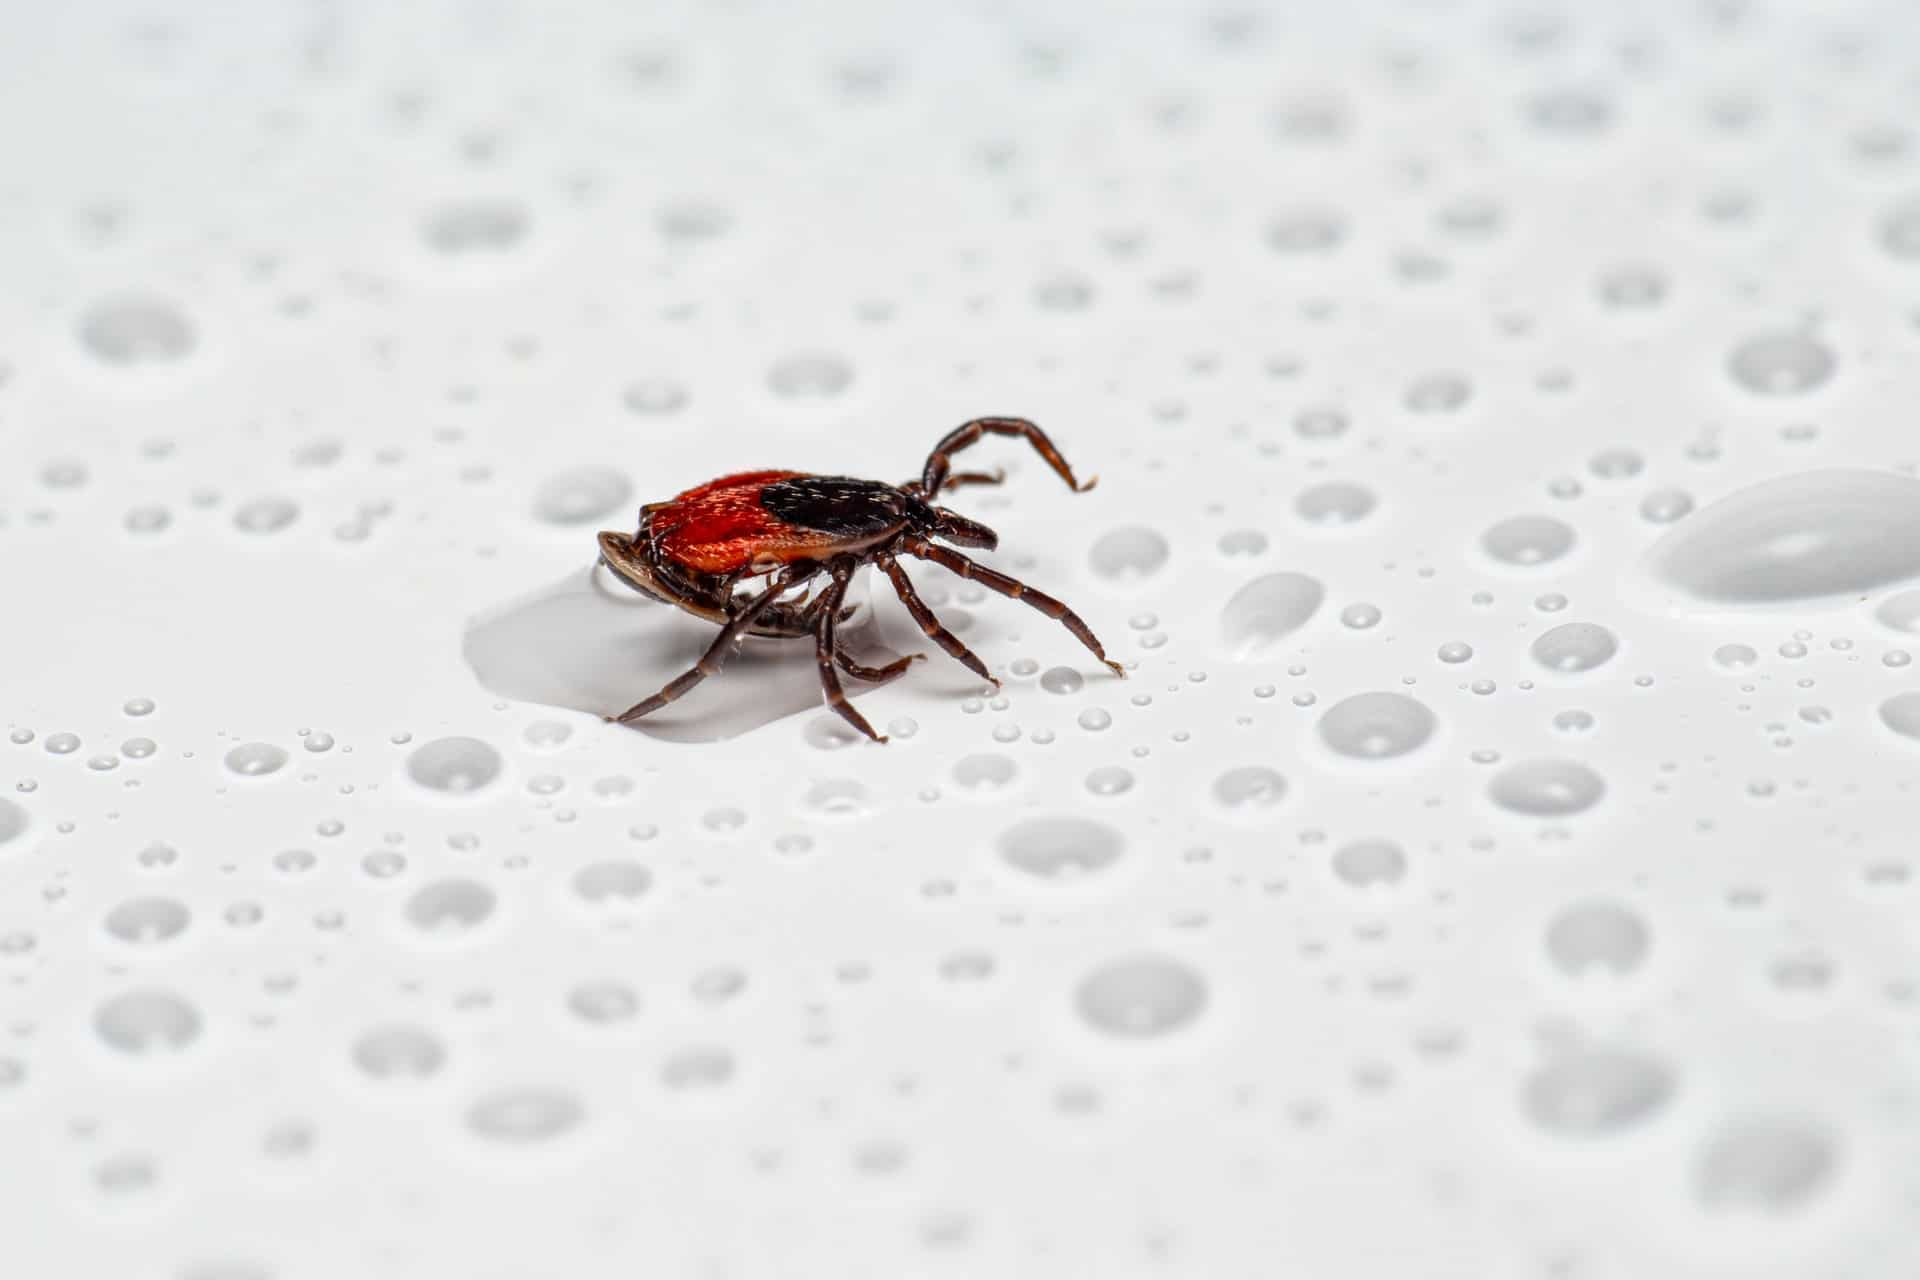 erik karits Fa RLALny8M unsplash - The Problem With Cockroaches: Health Risks and More